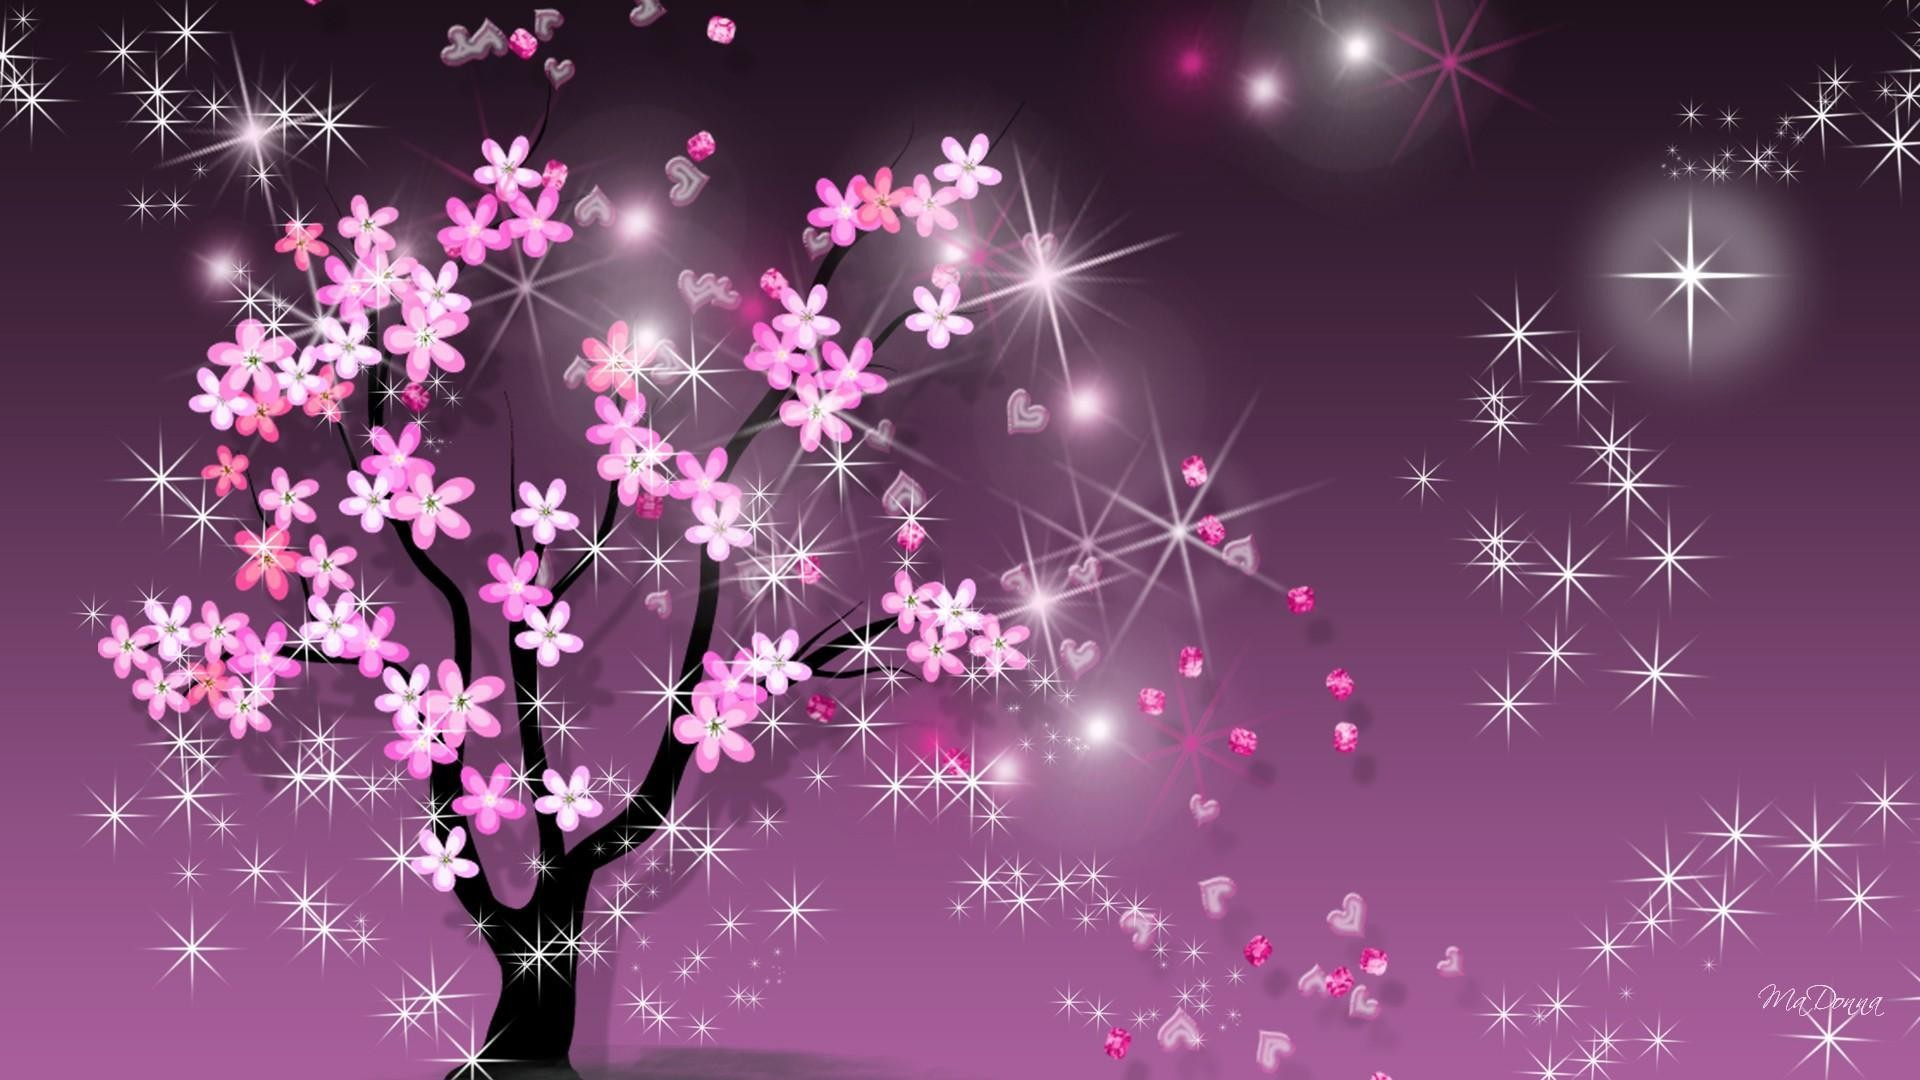 Wallpaper Dinding Bunga Sakura Paling Indah Untuk Sparkle Wallpapers